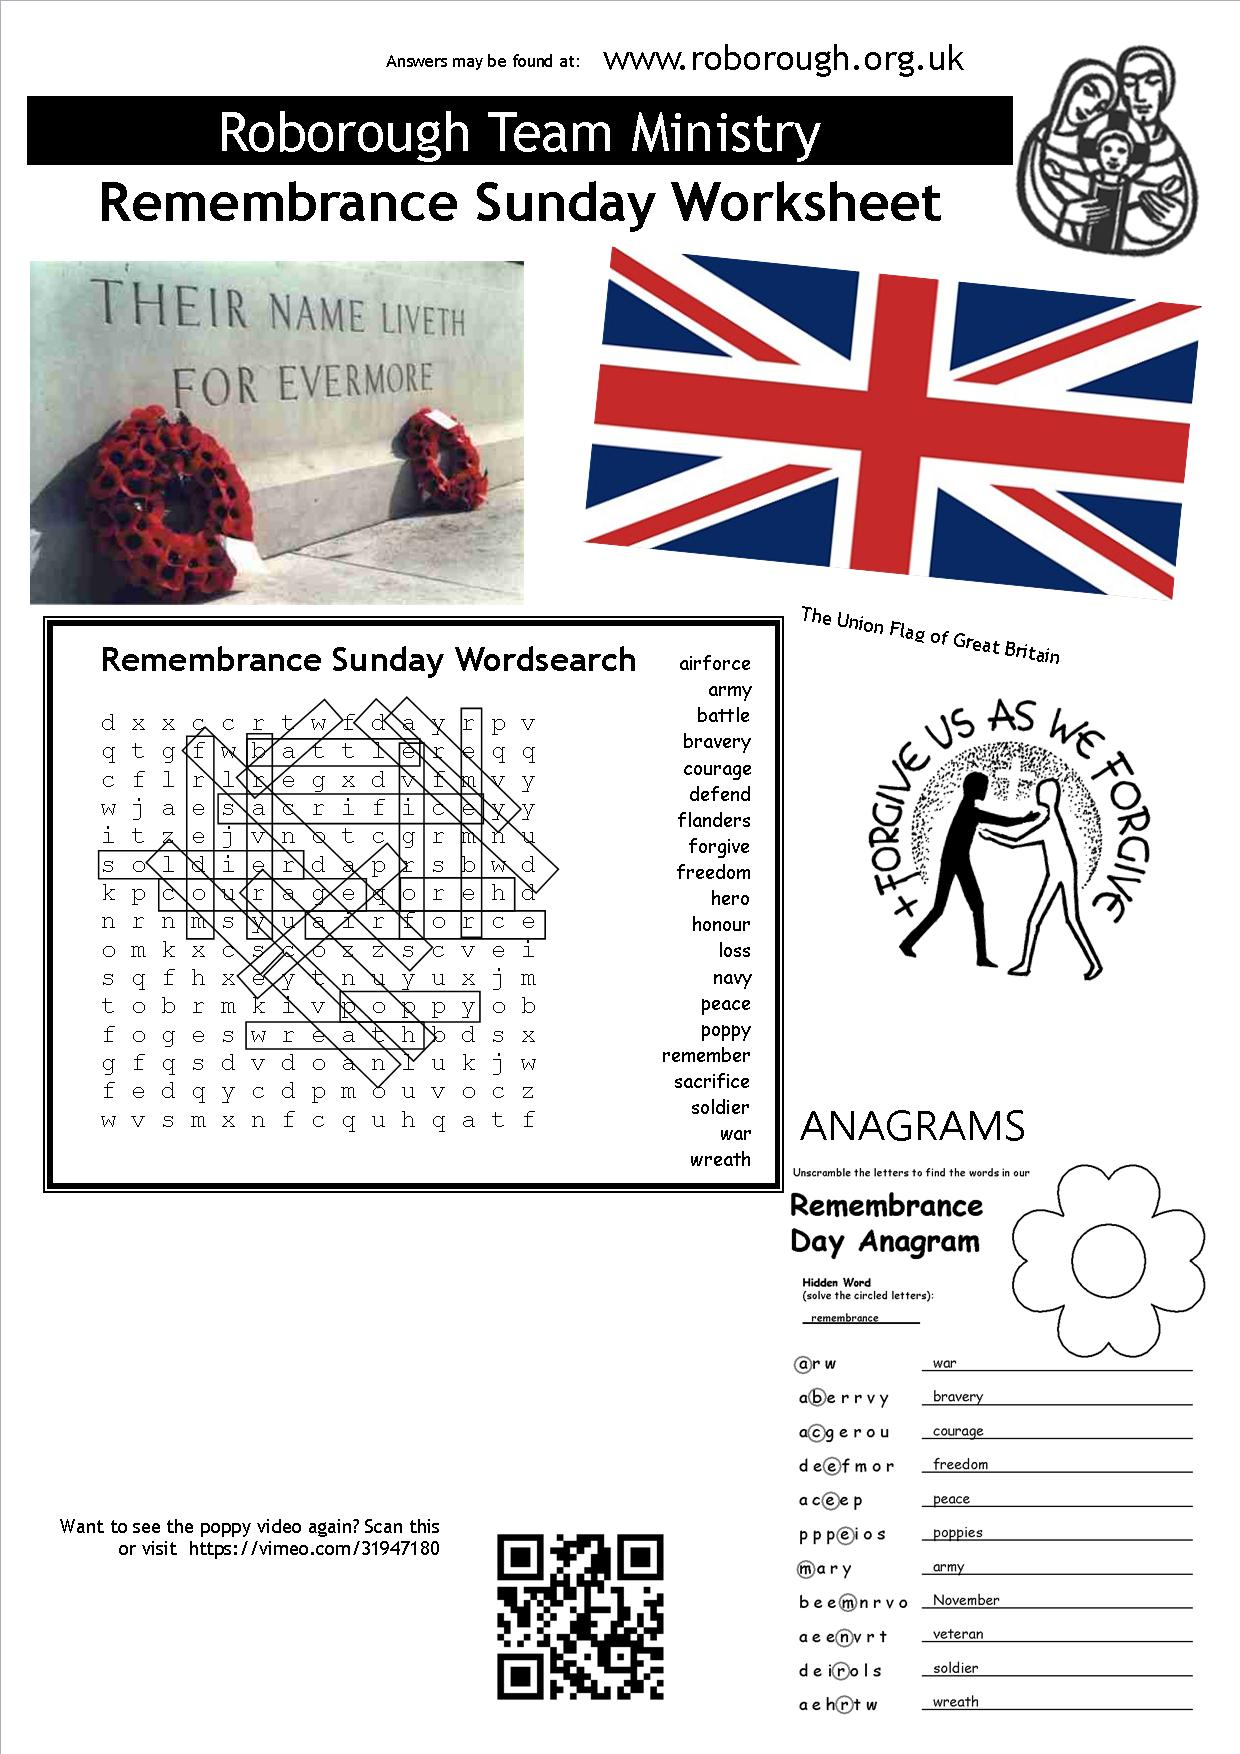 Remembrance Sunday Worksheet And Answers Roborough